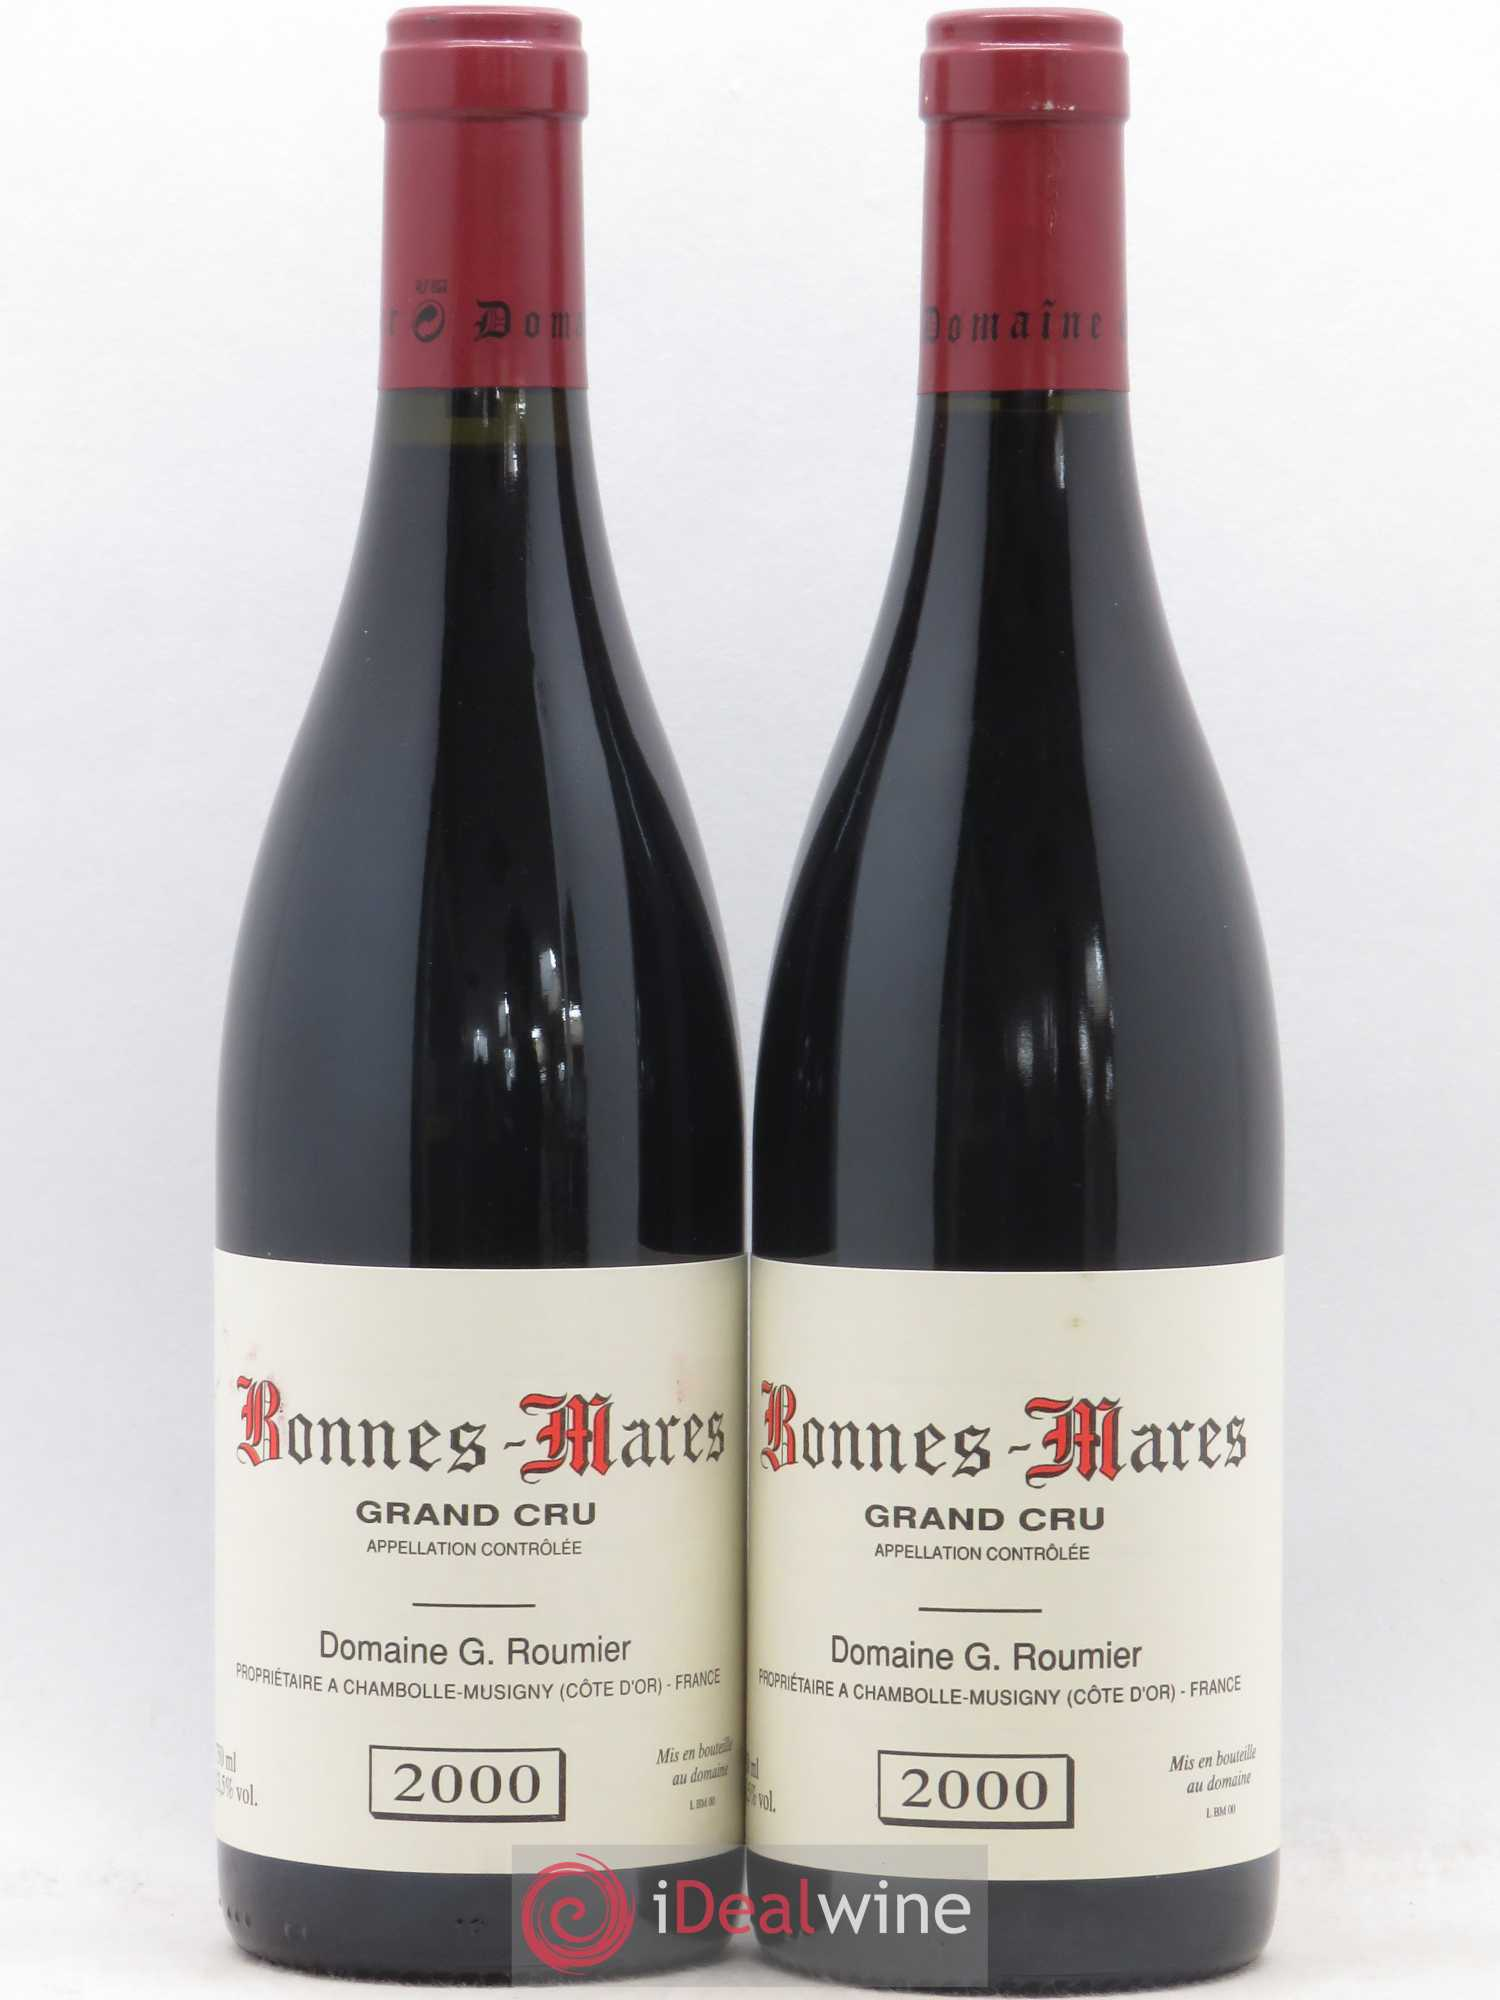 Bonnes-Mares Grand Cru Georges Roumier (Domaine)  2000 - Lot of 2 Bottles